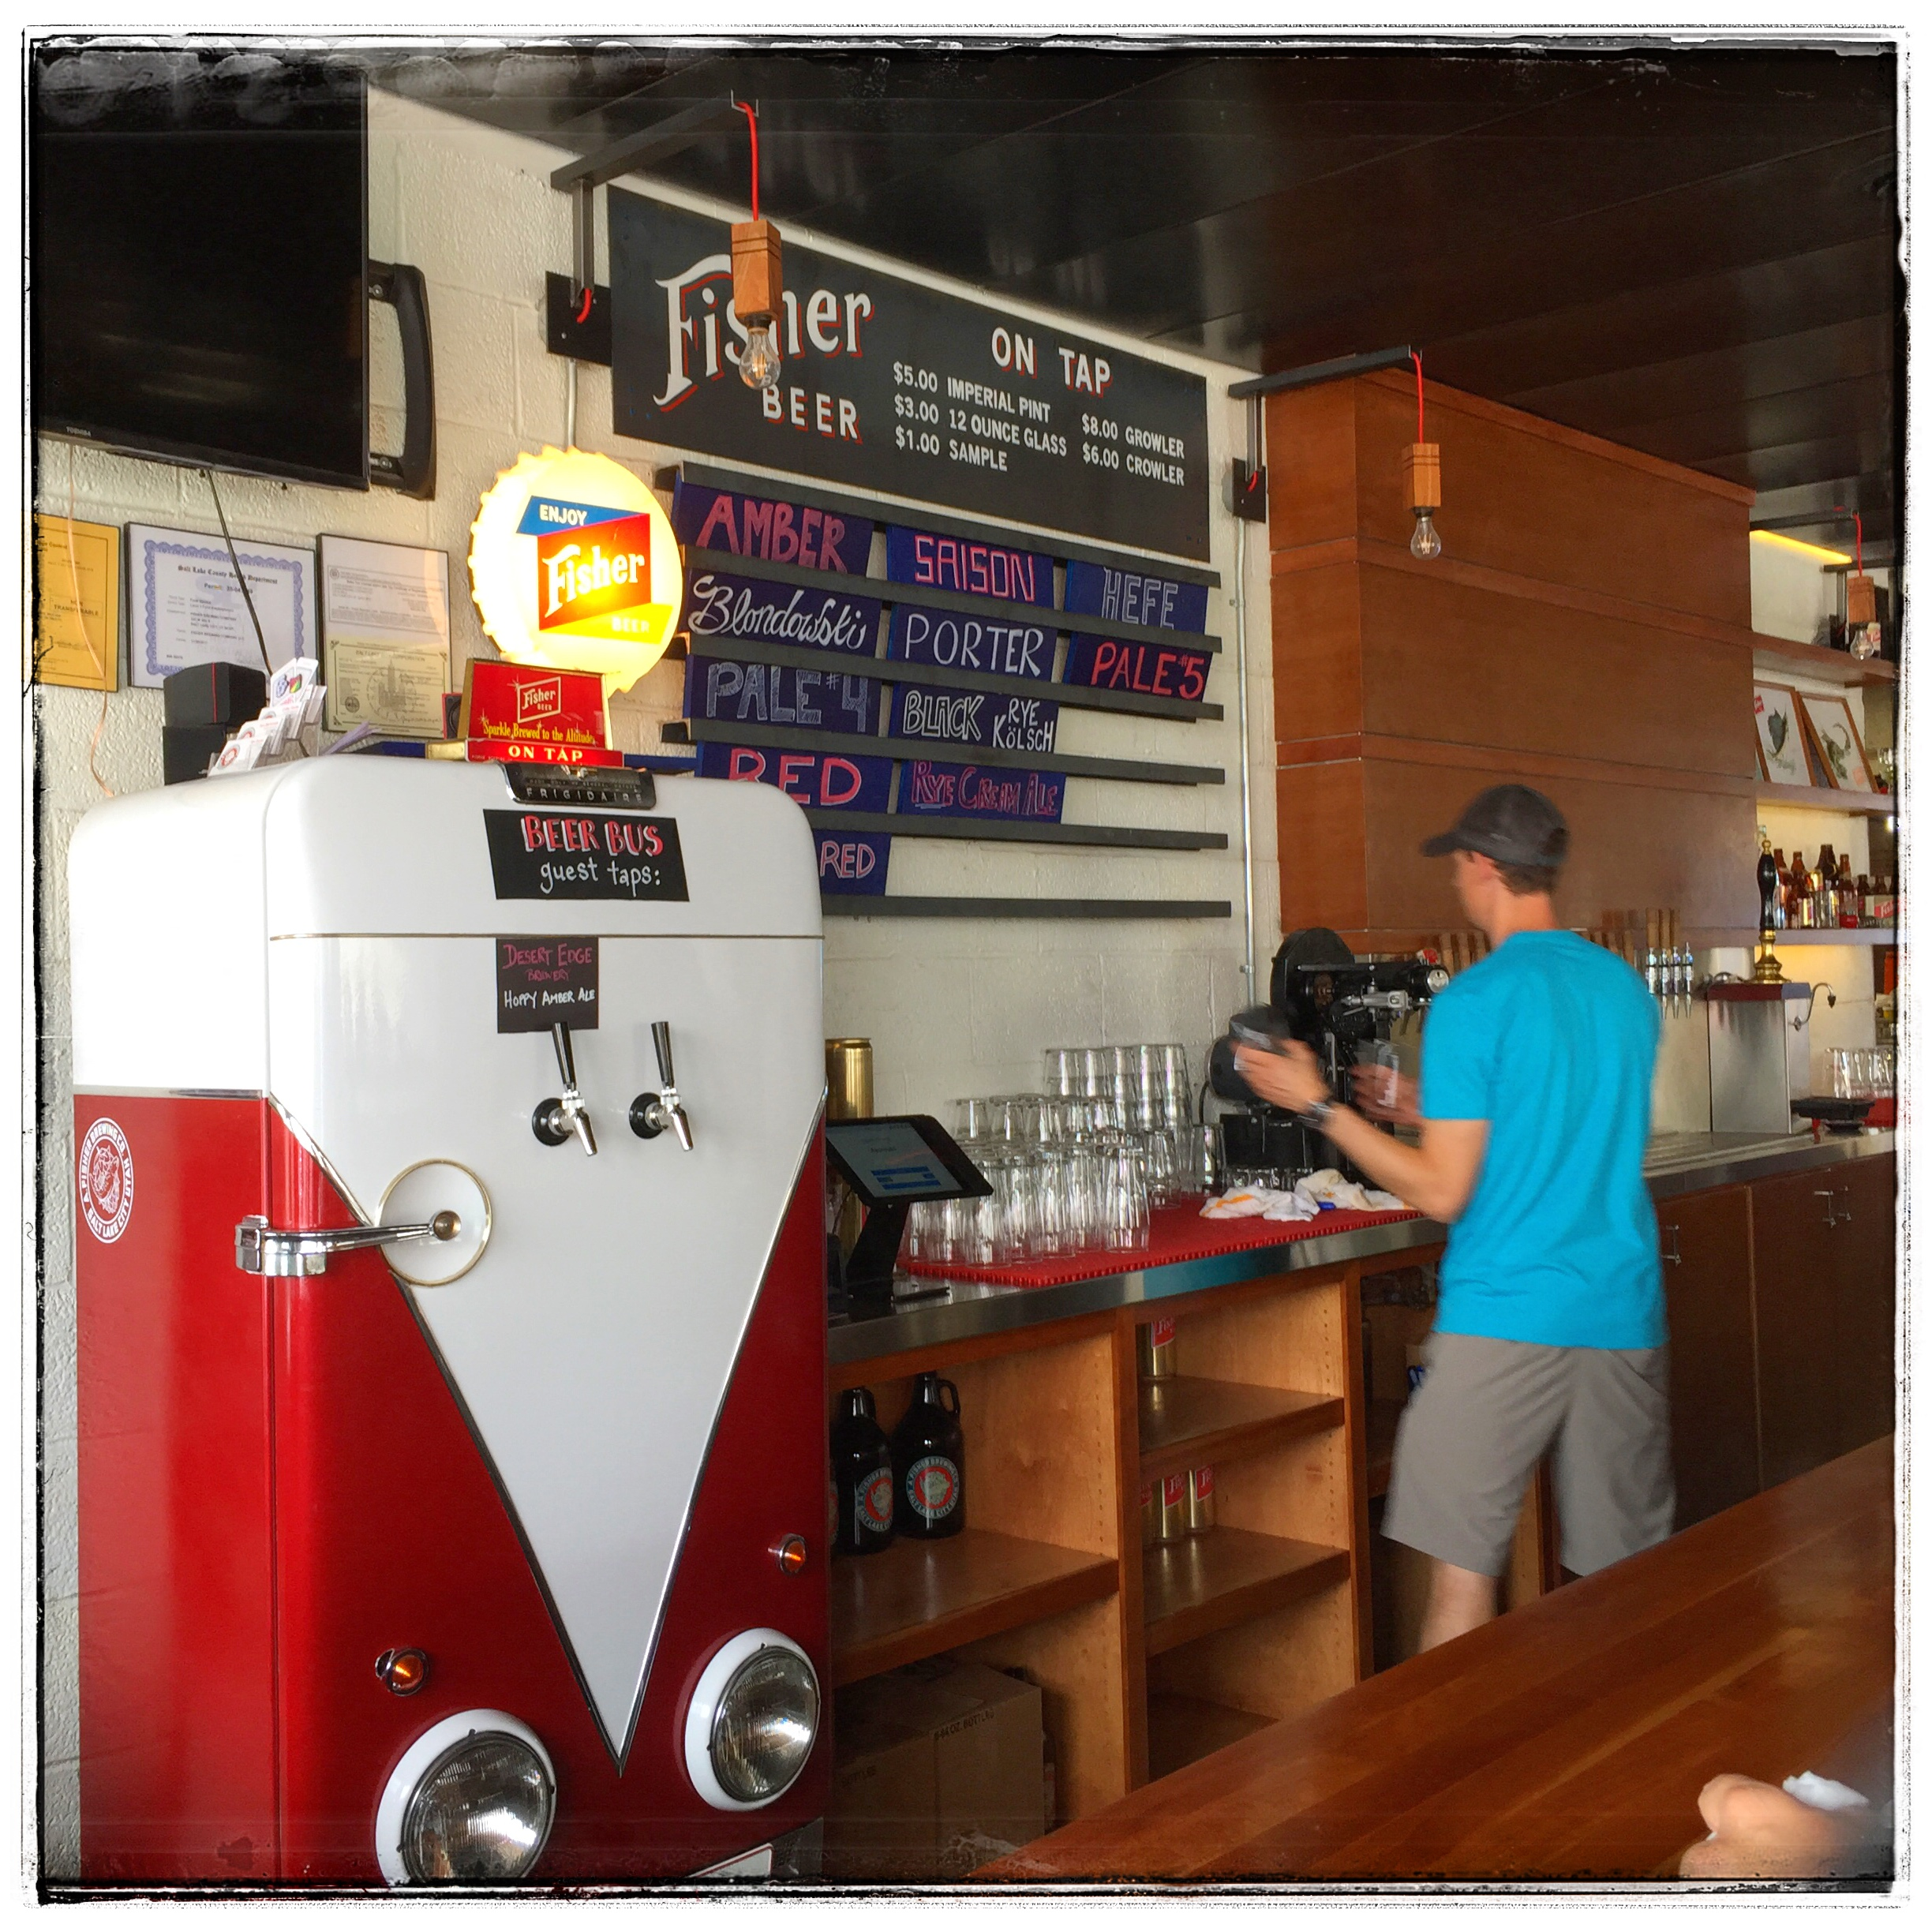 Fisher Brewing - The taproom is minalmallist with a lot of character.